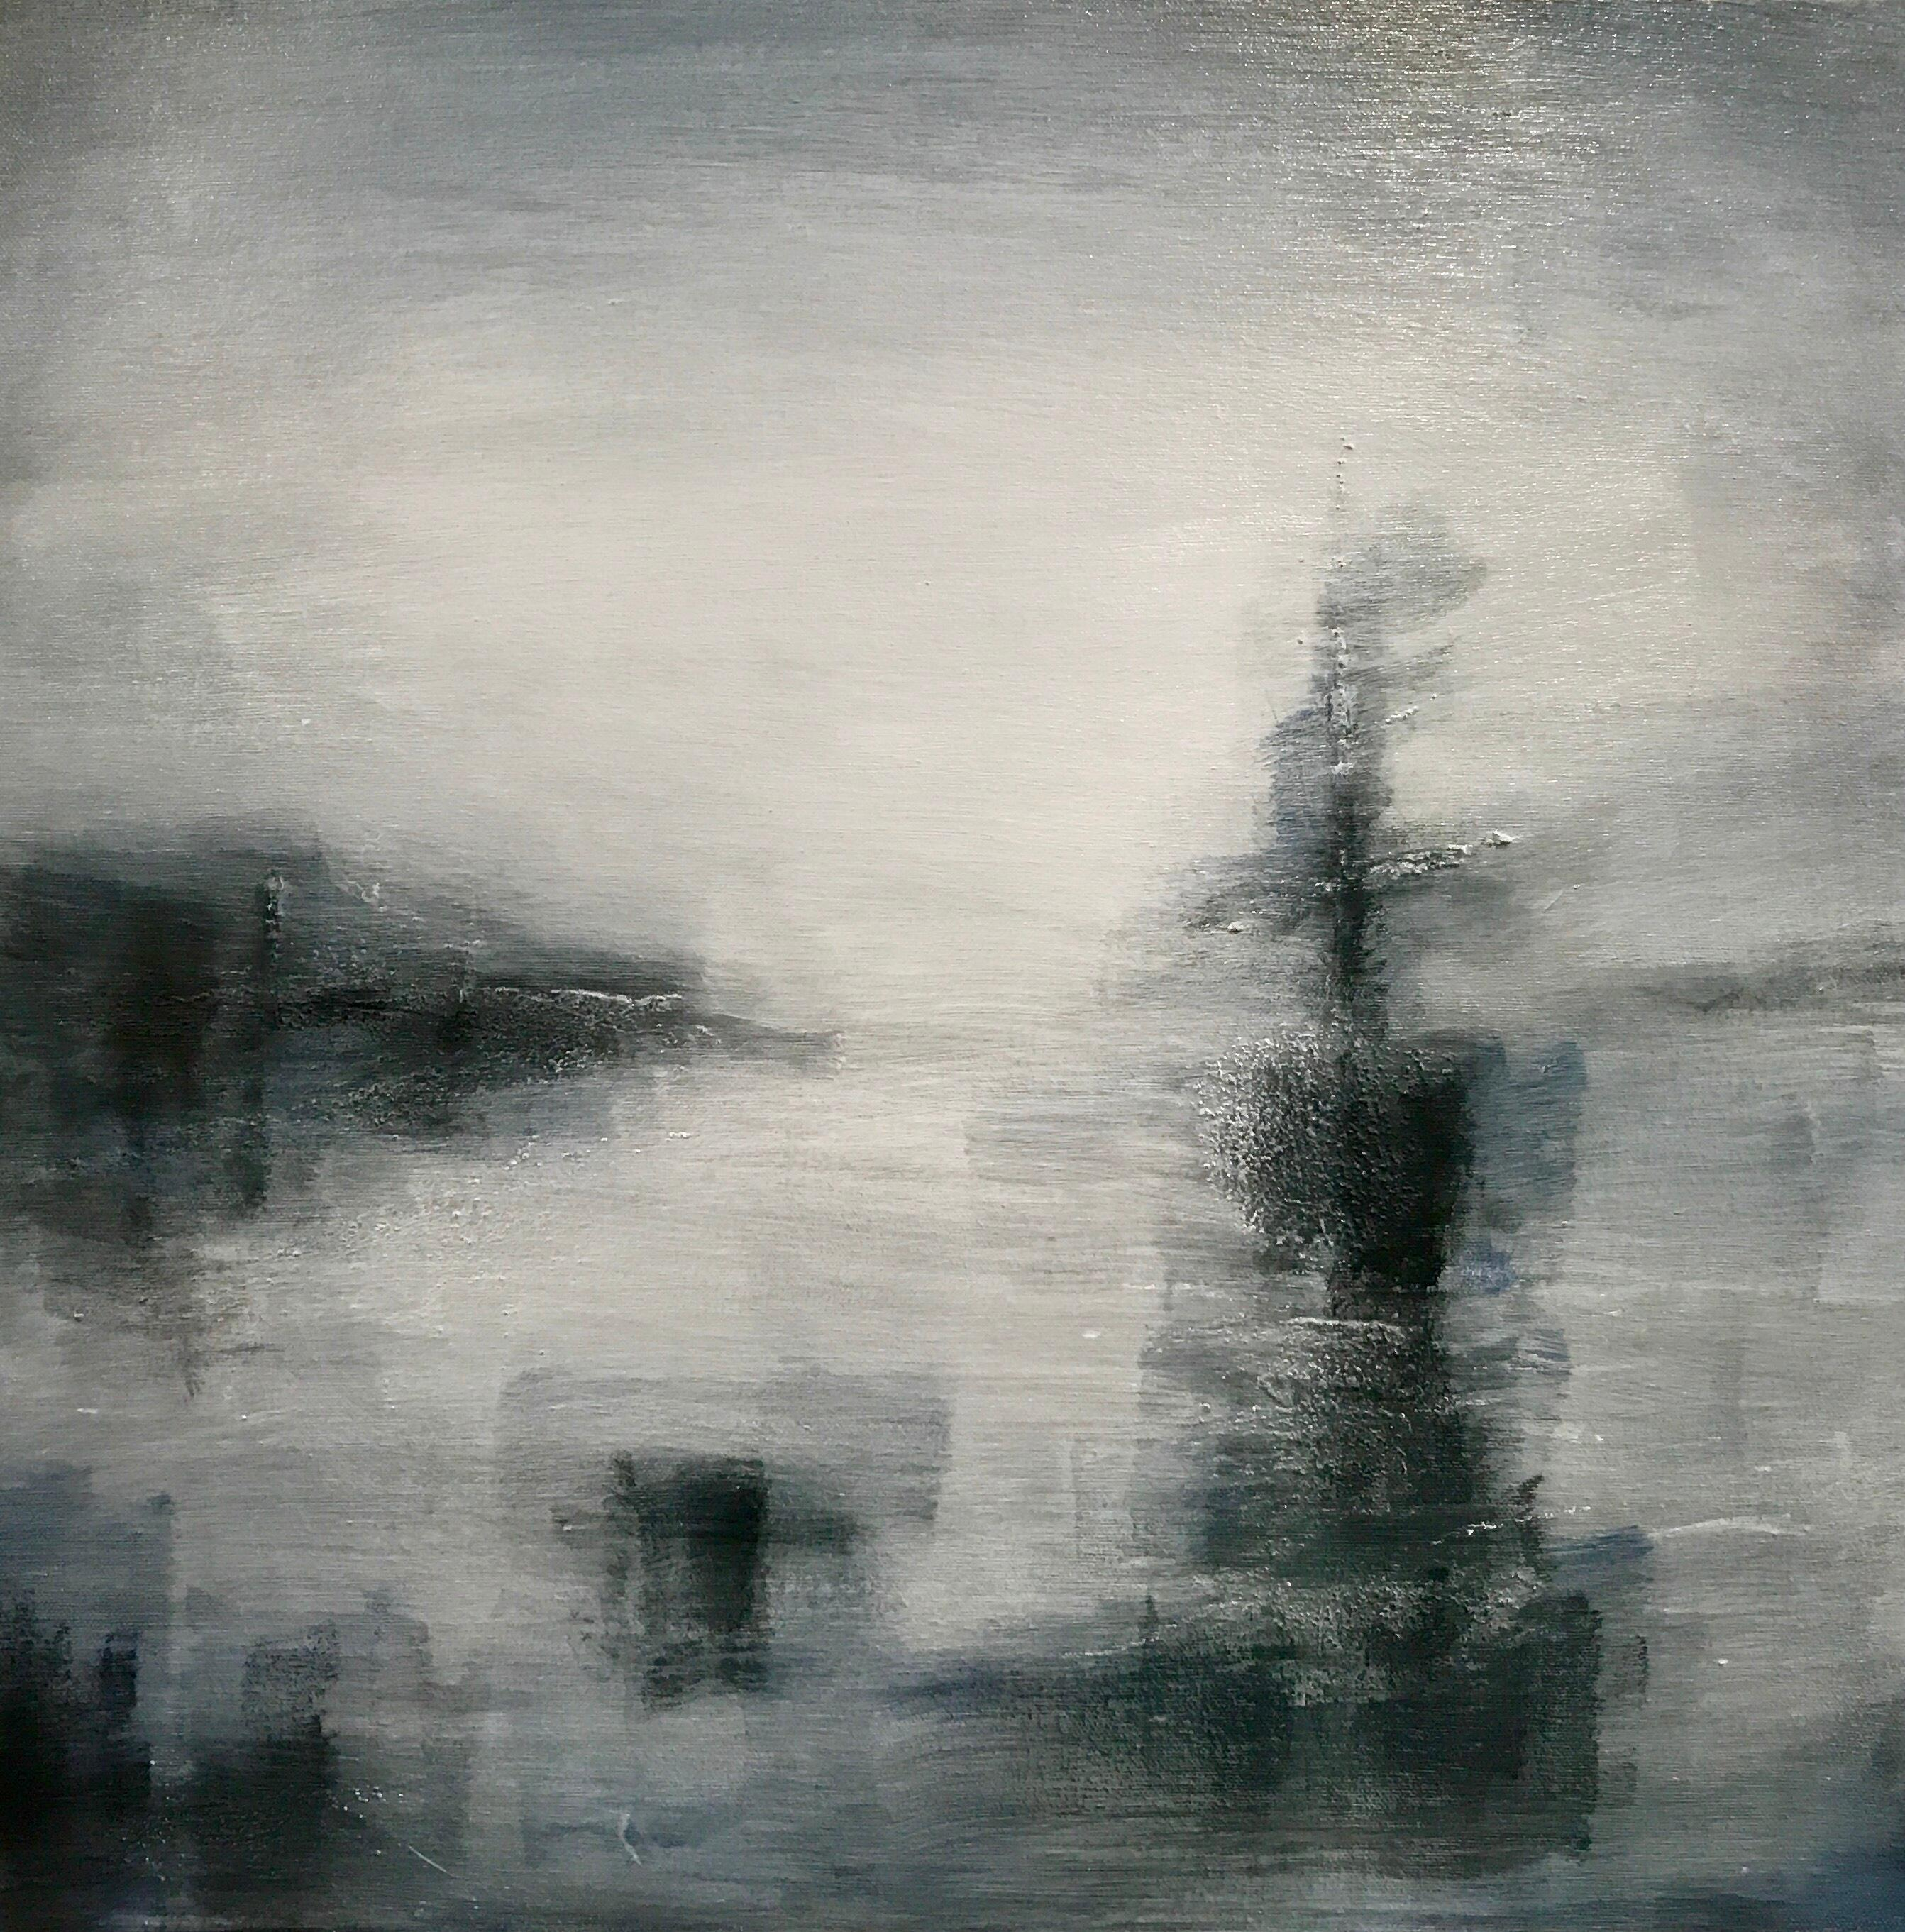 The Boat - A Contemporary Landscape Painting by Clodagh Meiklejohn